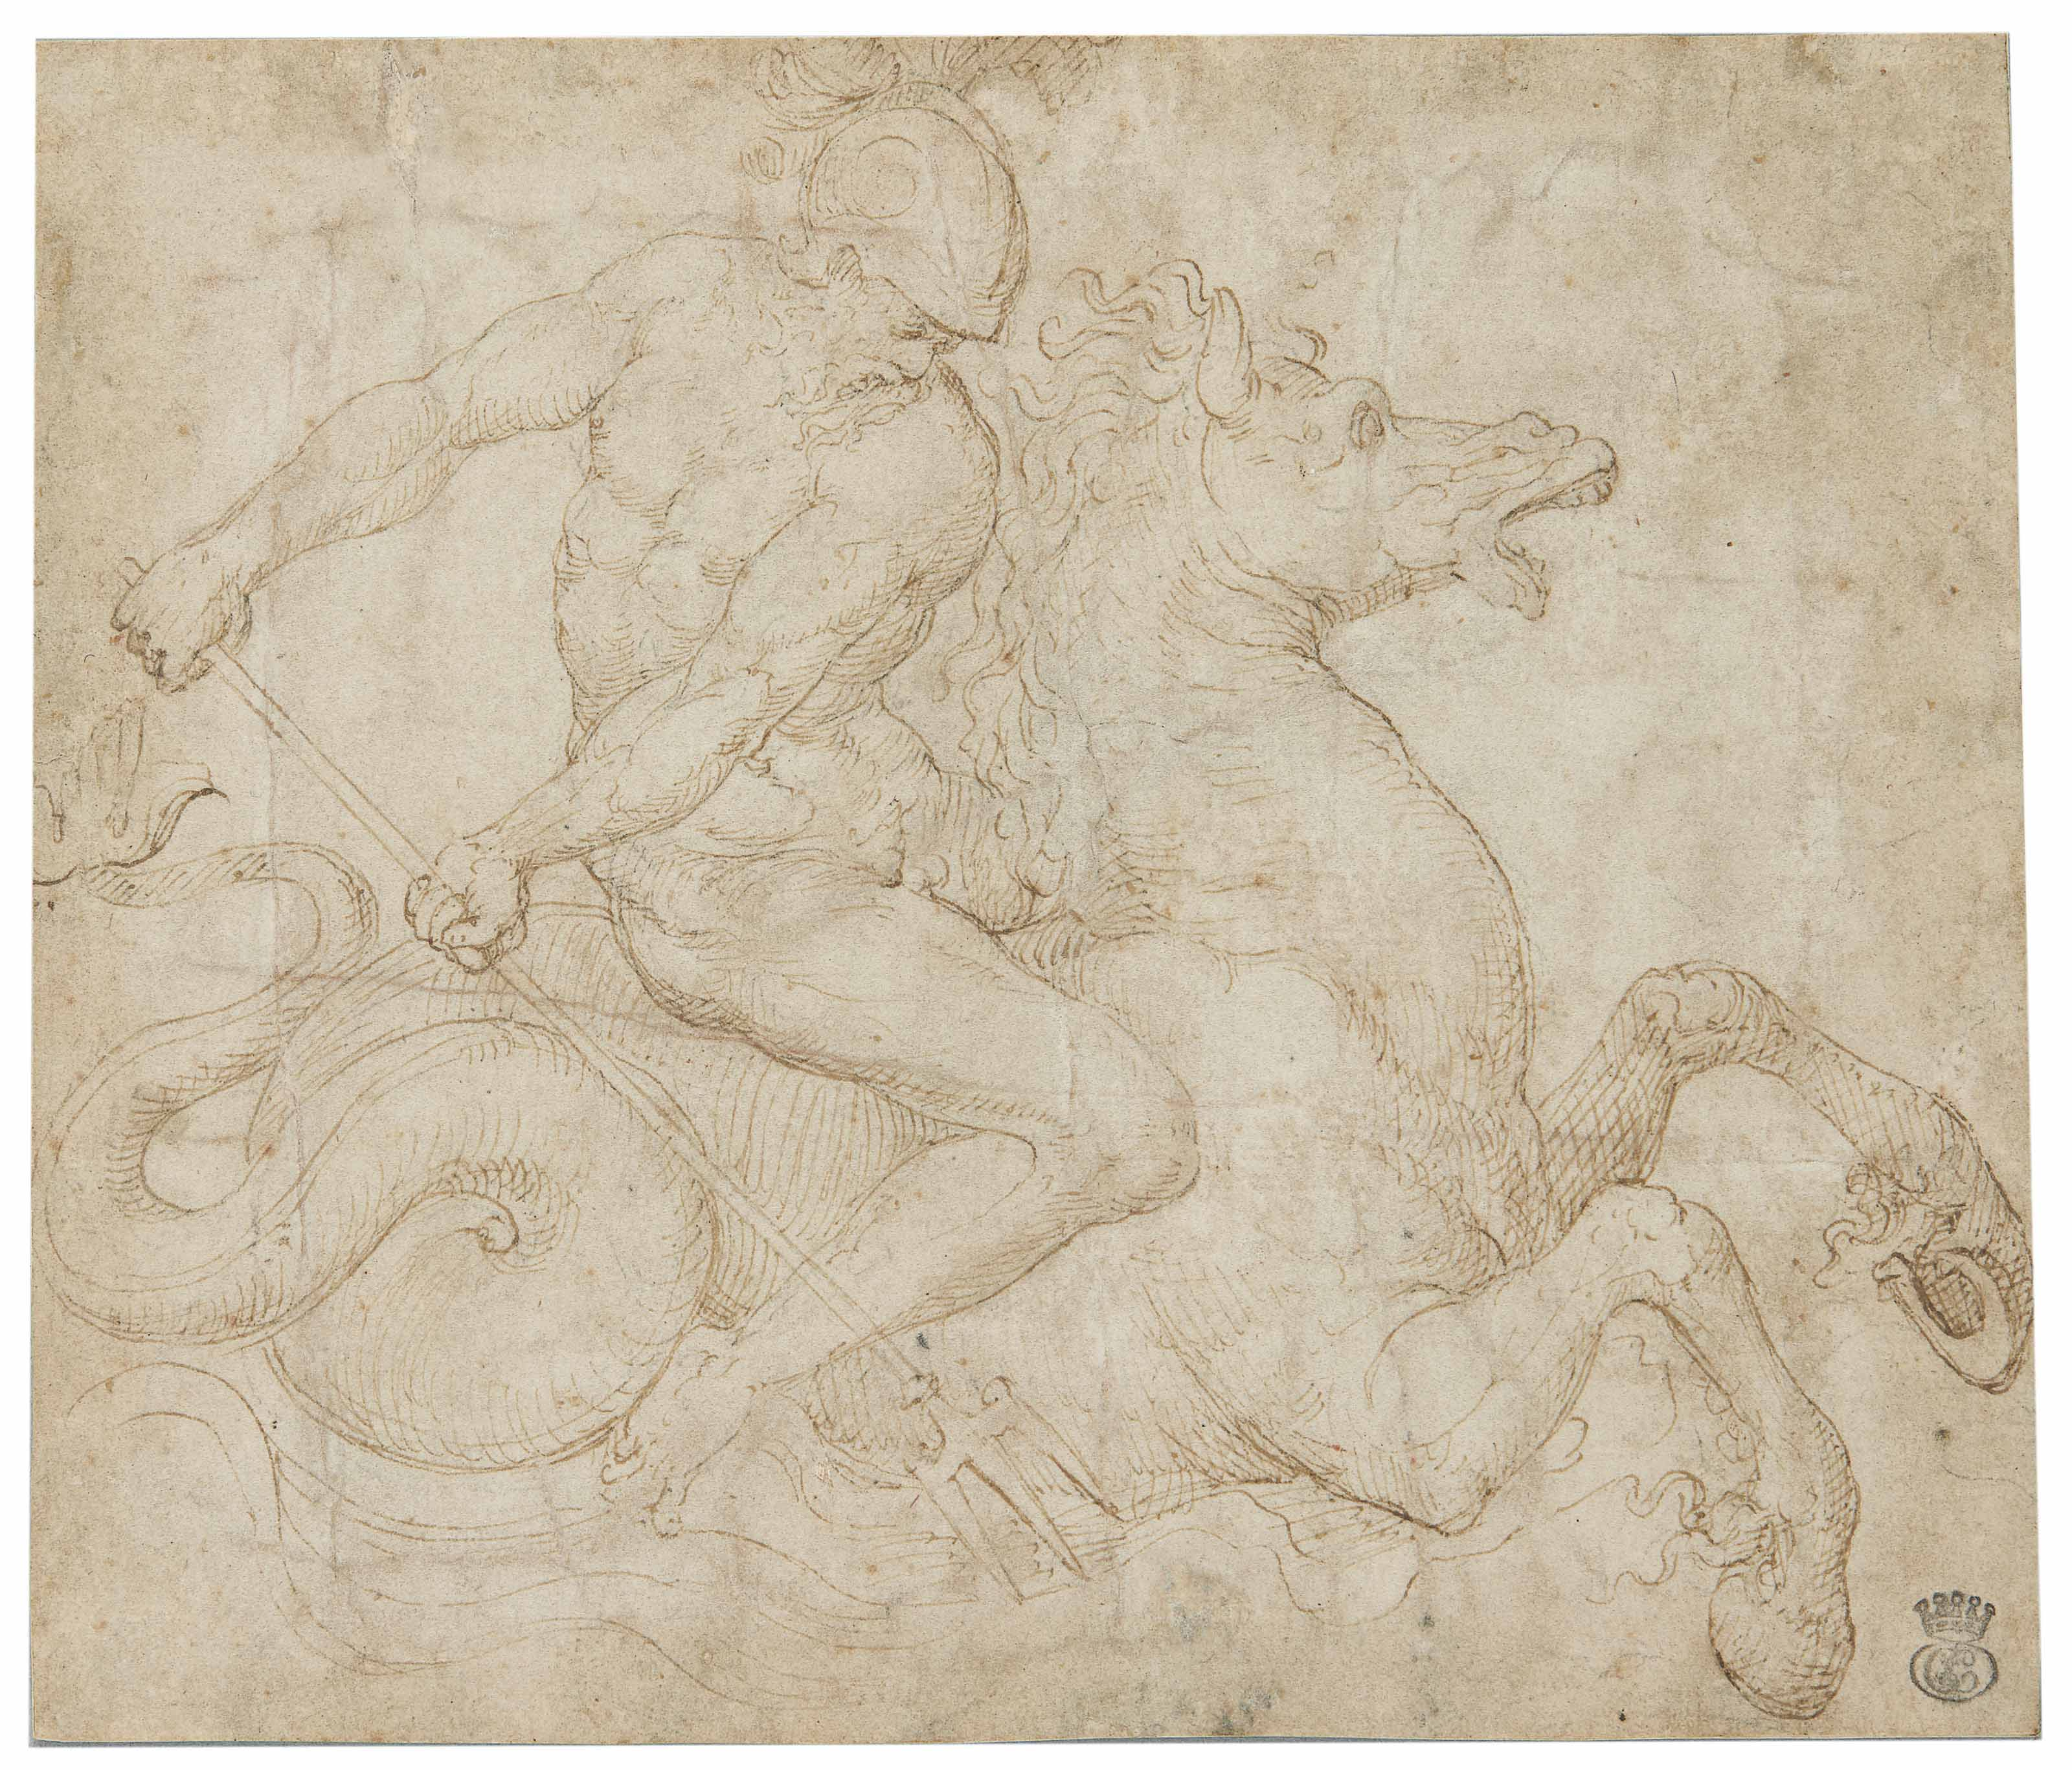 Neptune on a hippocamp wielding a trident